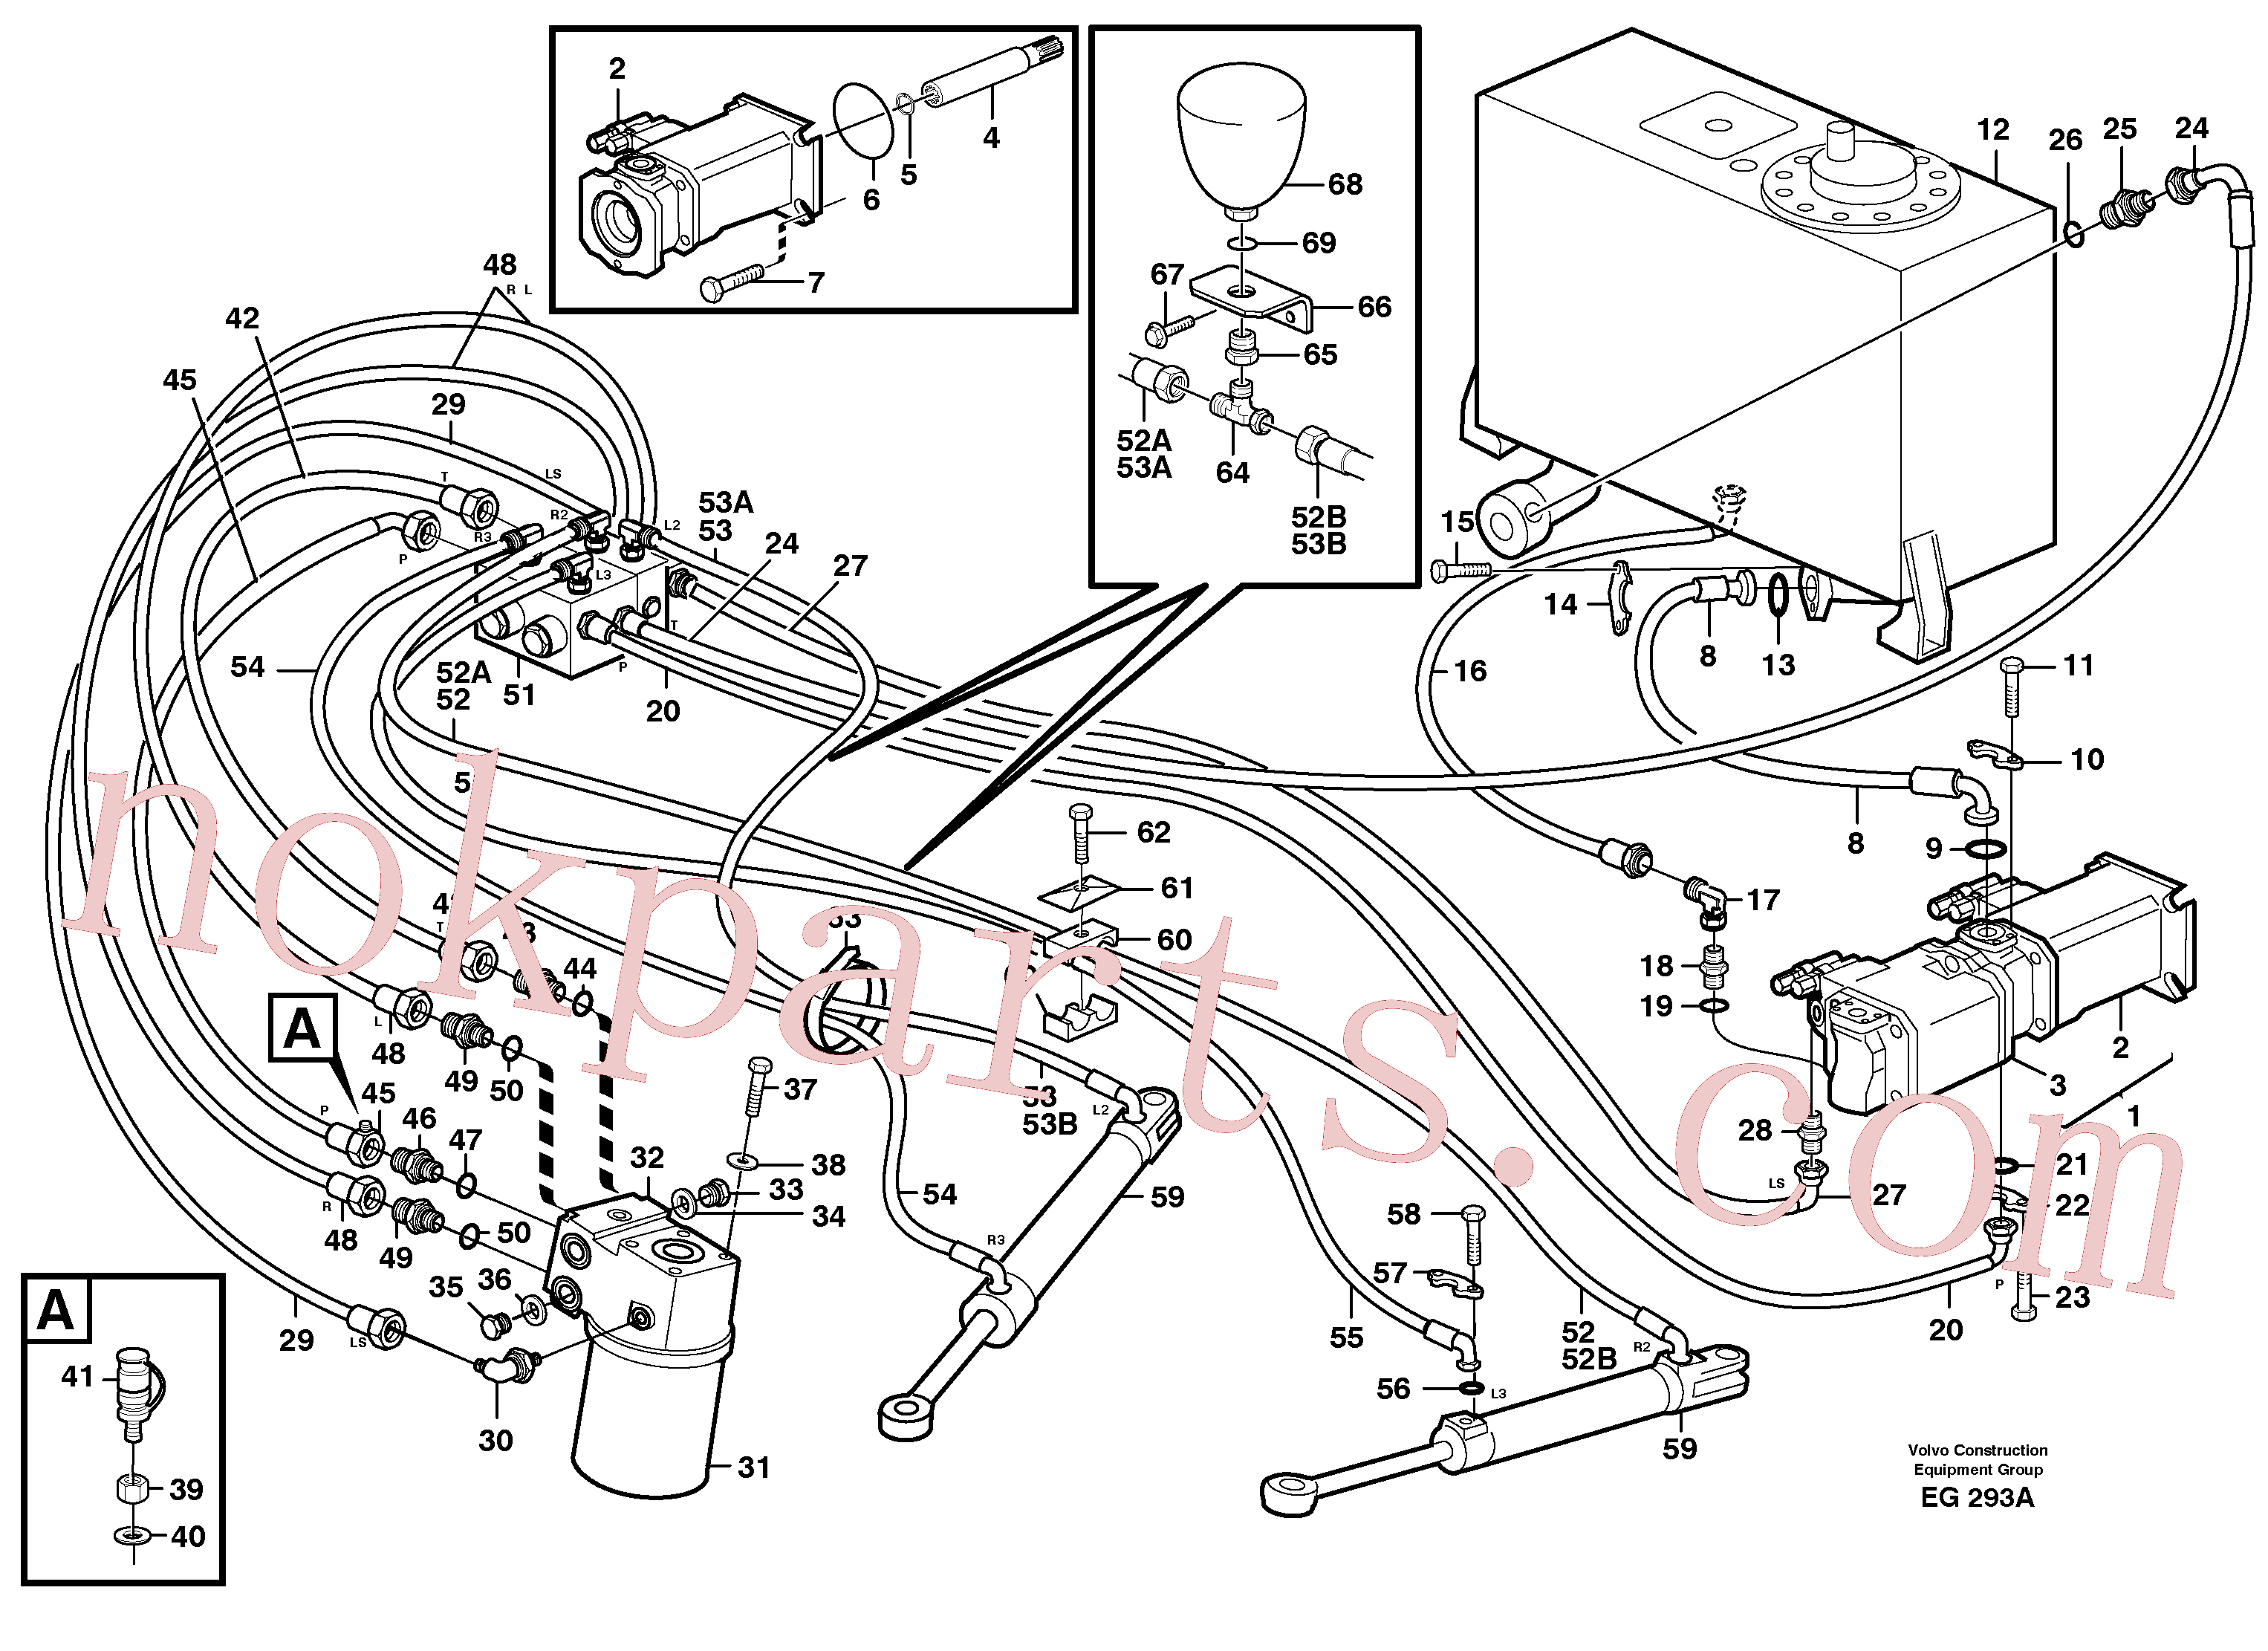 SA9512-02228 for Volvo Steering system(EG293A assembly)